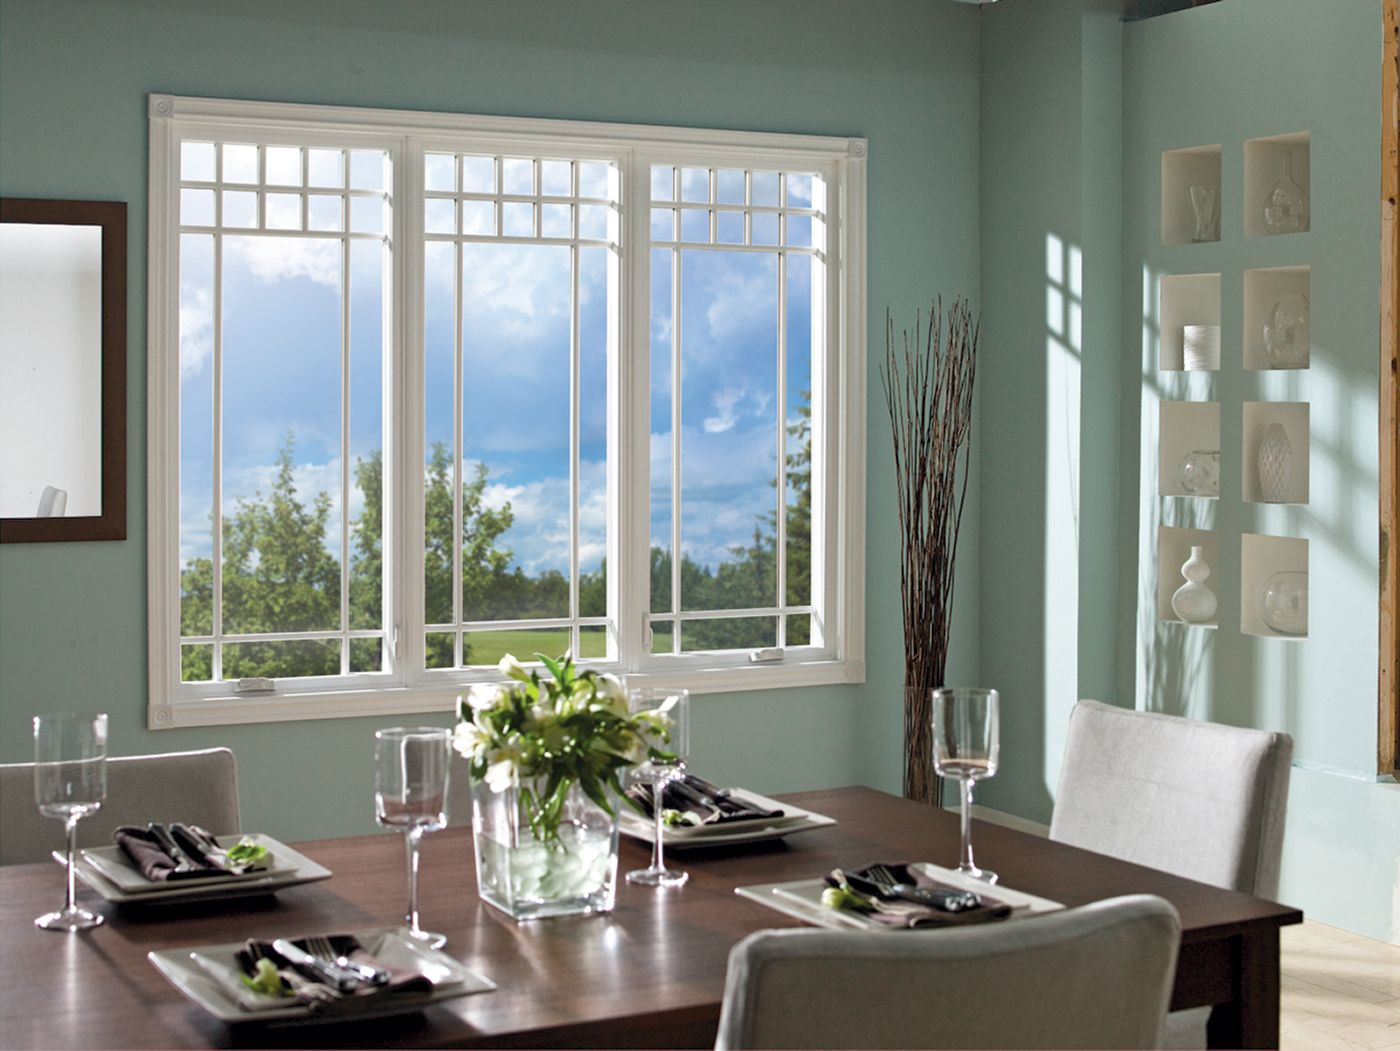 House windows design image 004 exterior paint color home for Window vinyl design